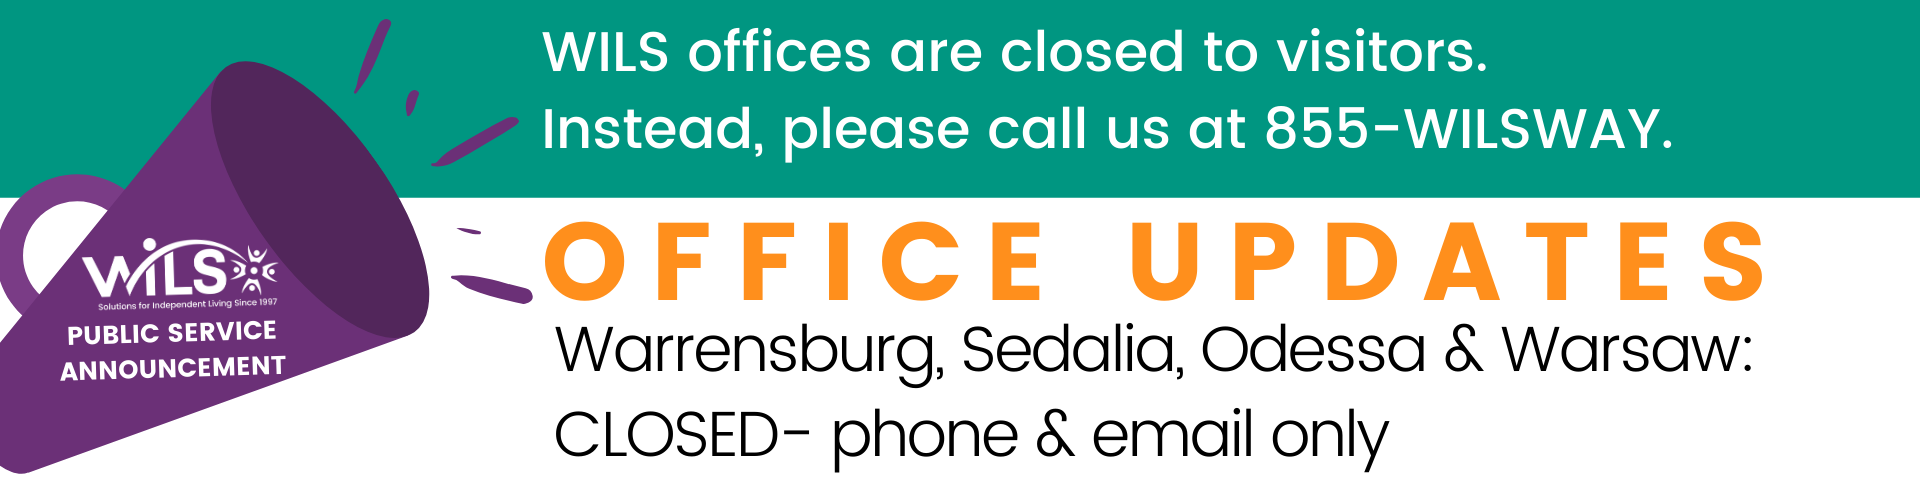 PSA - WILS offices are closed to visitors. Instead, please call us at 855-WILSWAY.